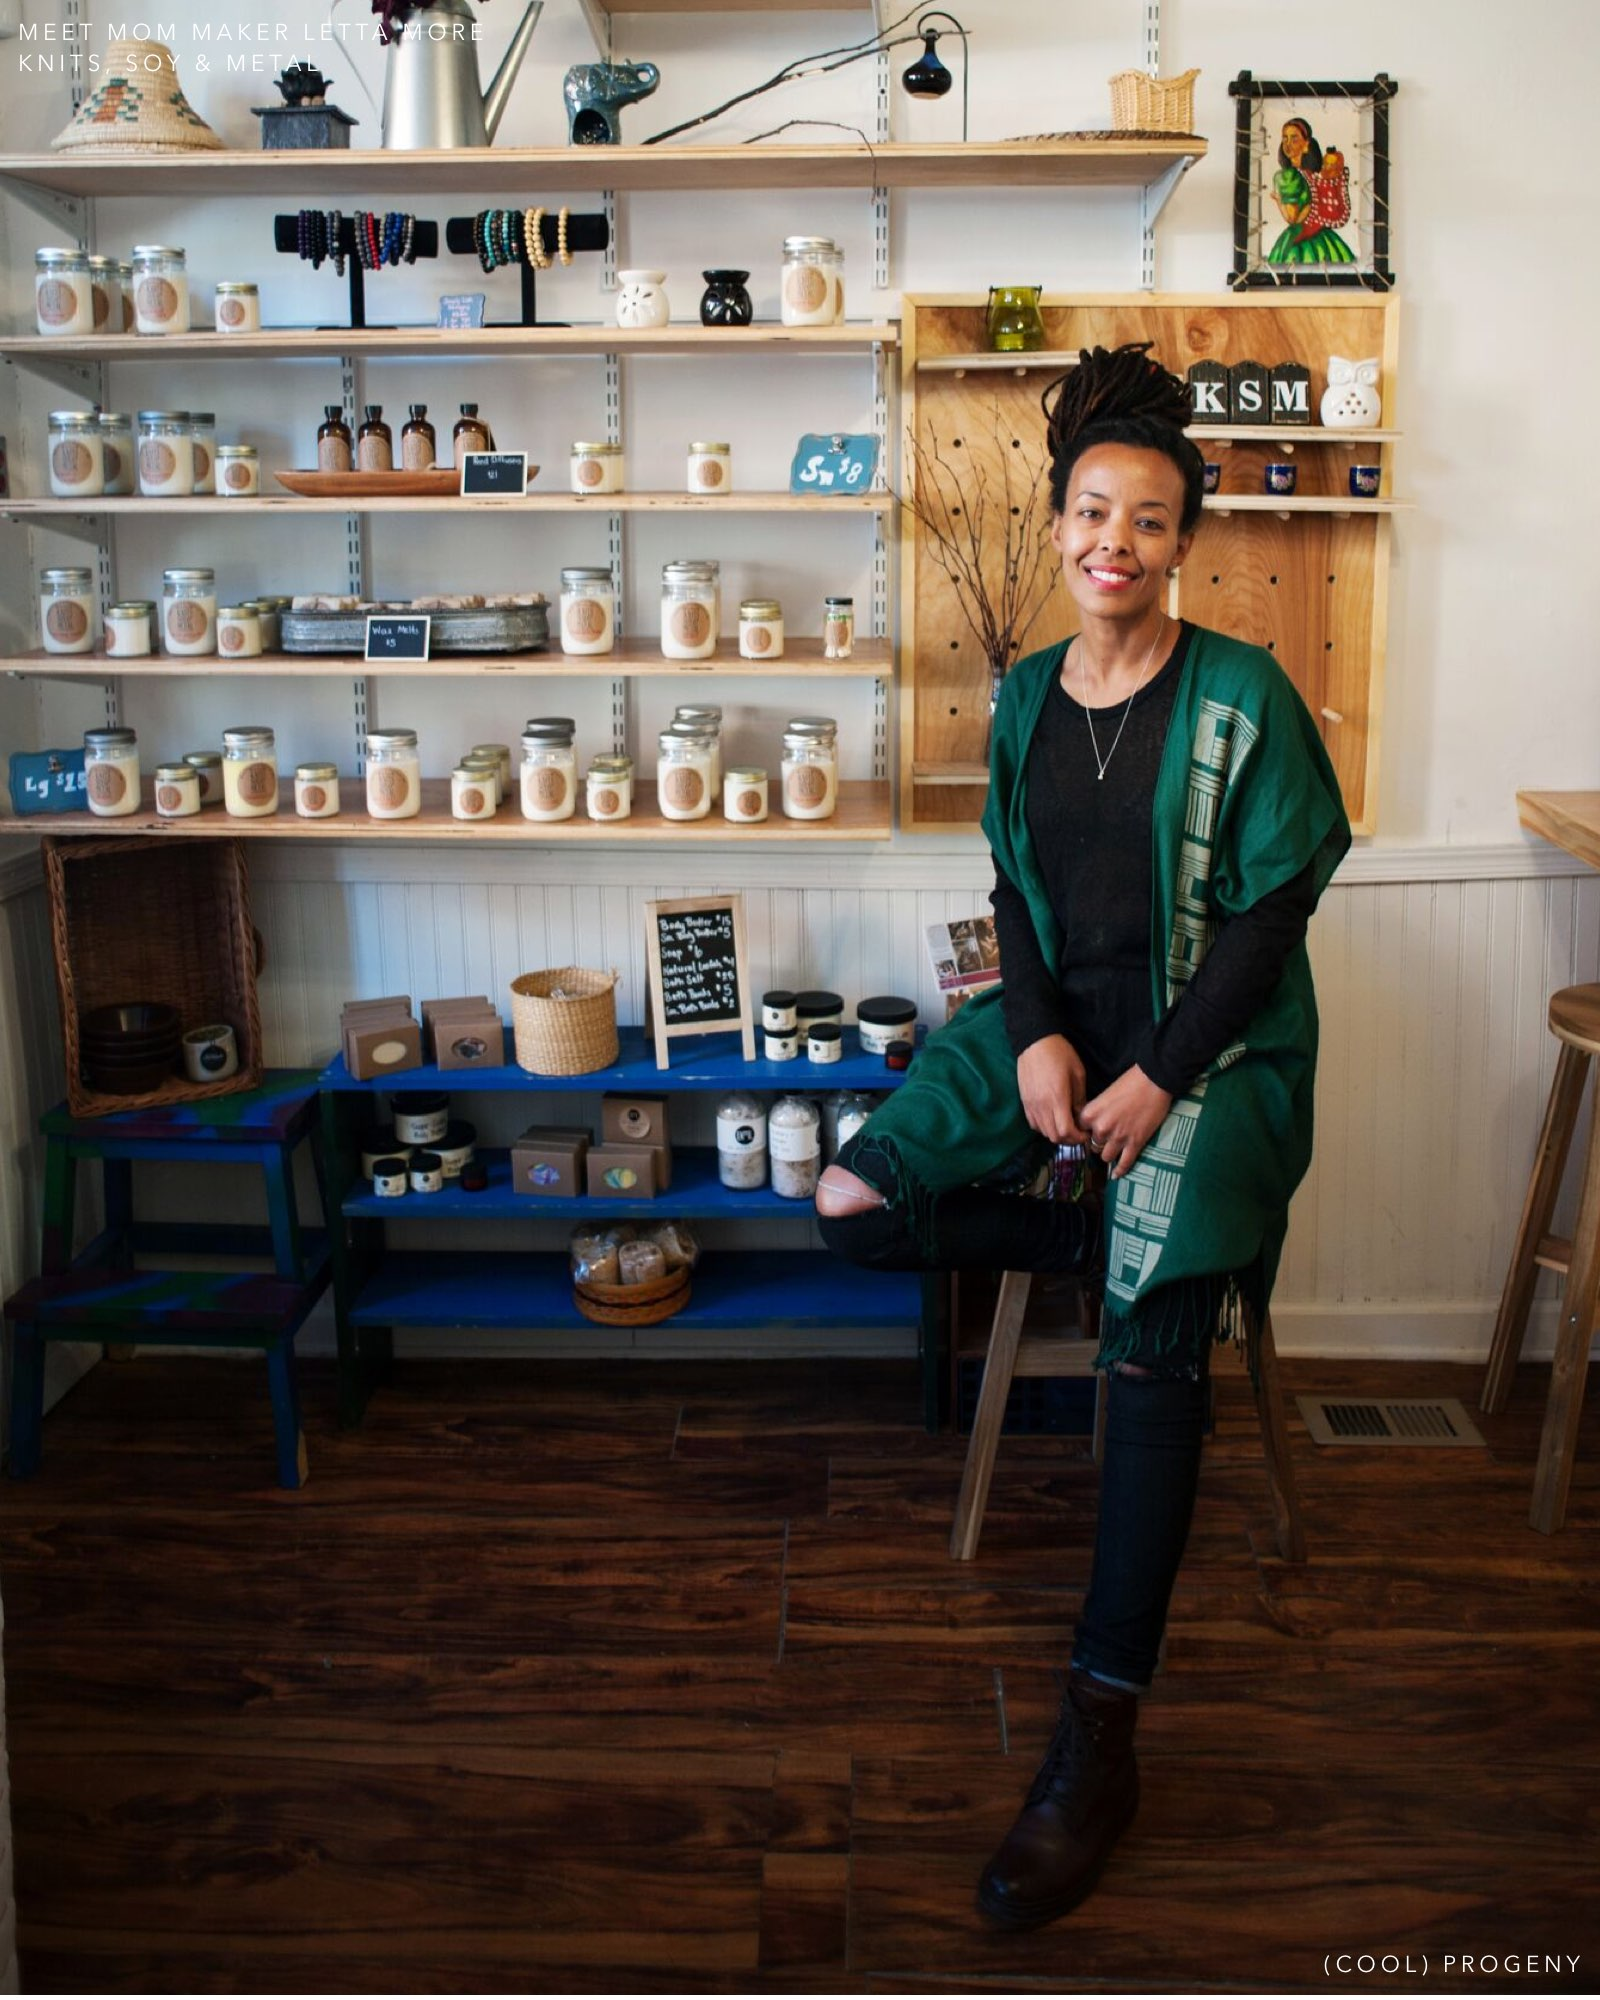 Meet the Mom Maker - Letta Moore of Knits, Soy & Metal - (cool) progeny